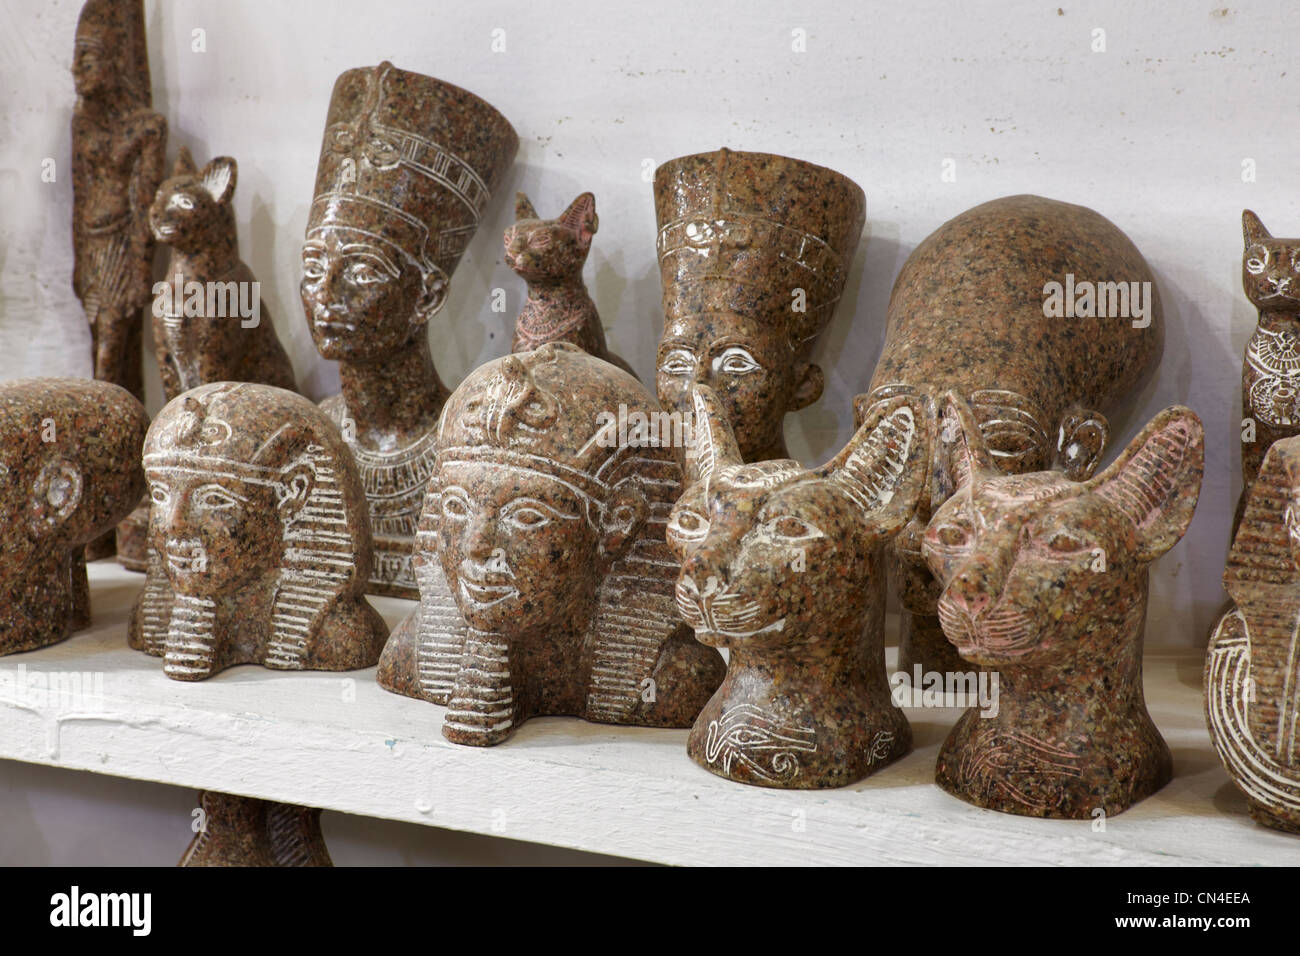 Basaltic souvenir from Egypt, Pharaoh statue - Stock Image